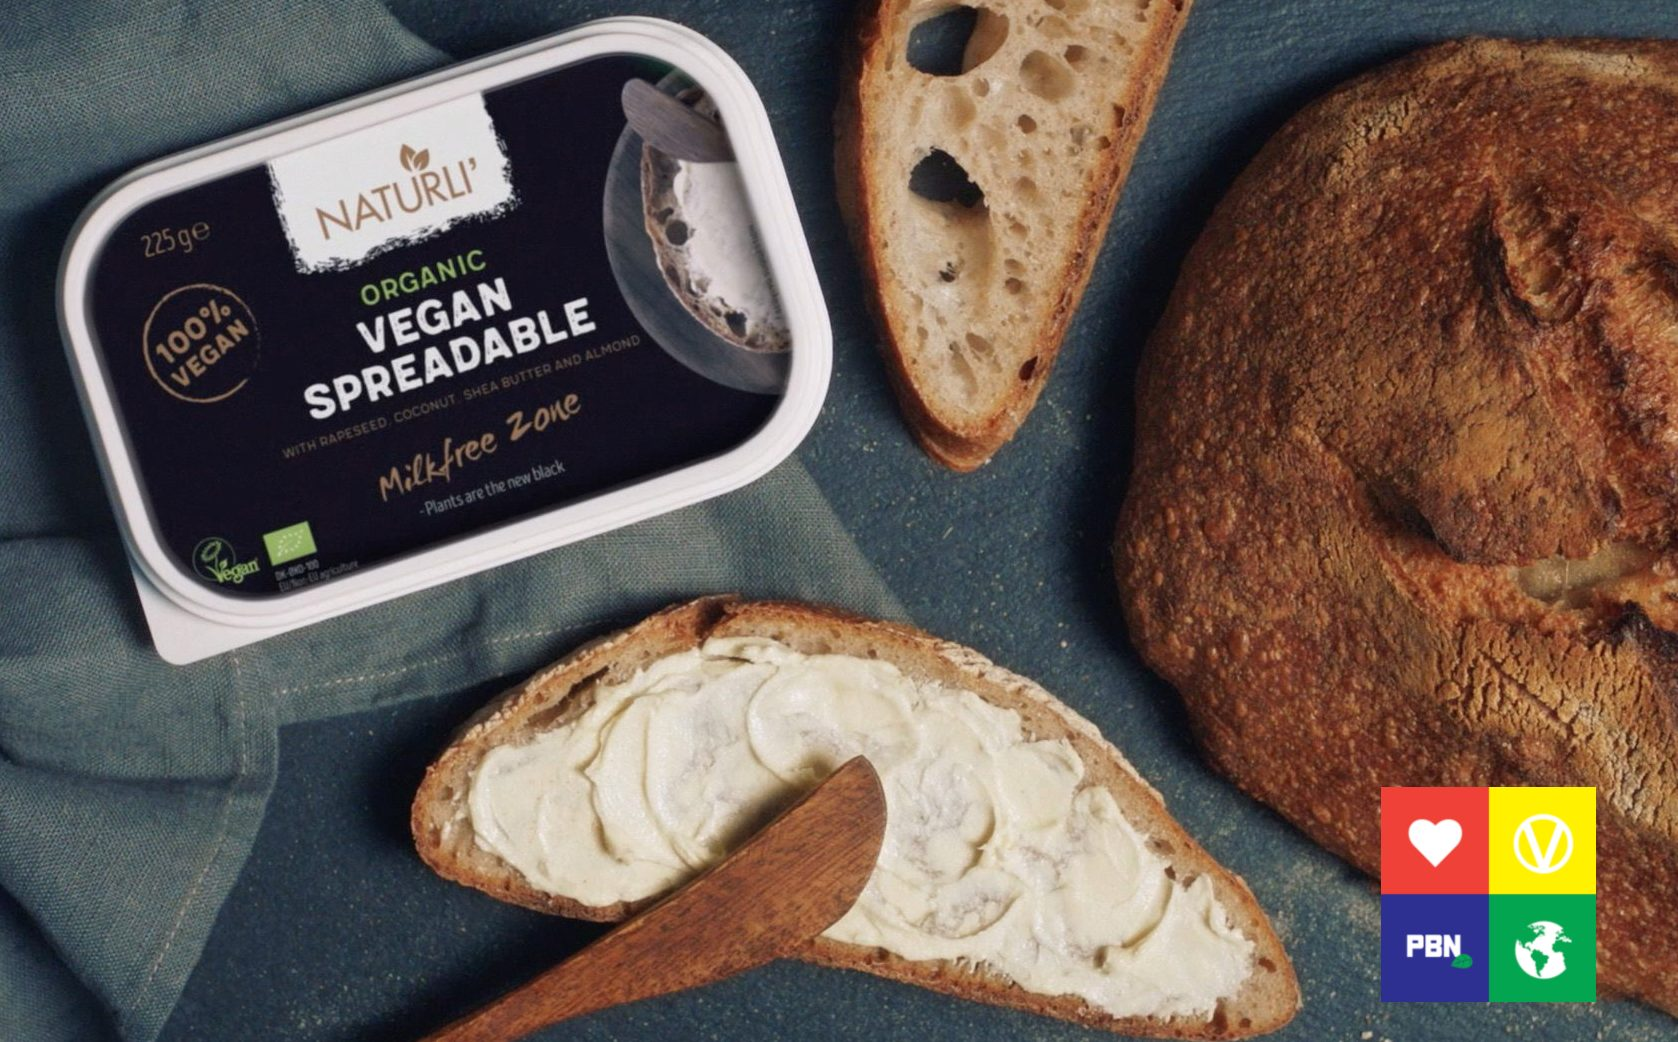 Naturli' spreadable vegan butter